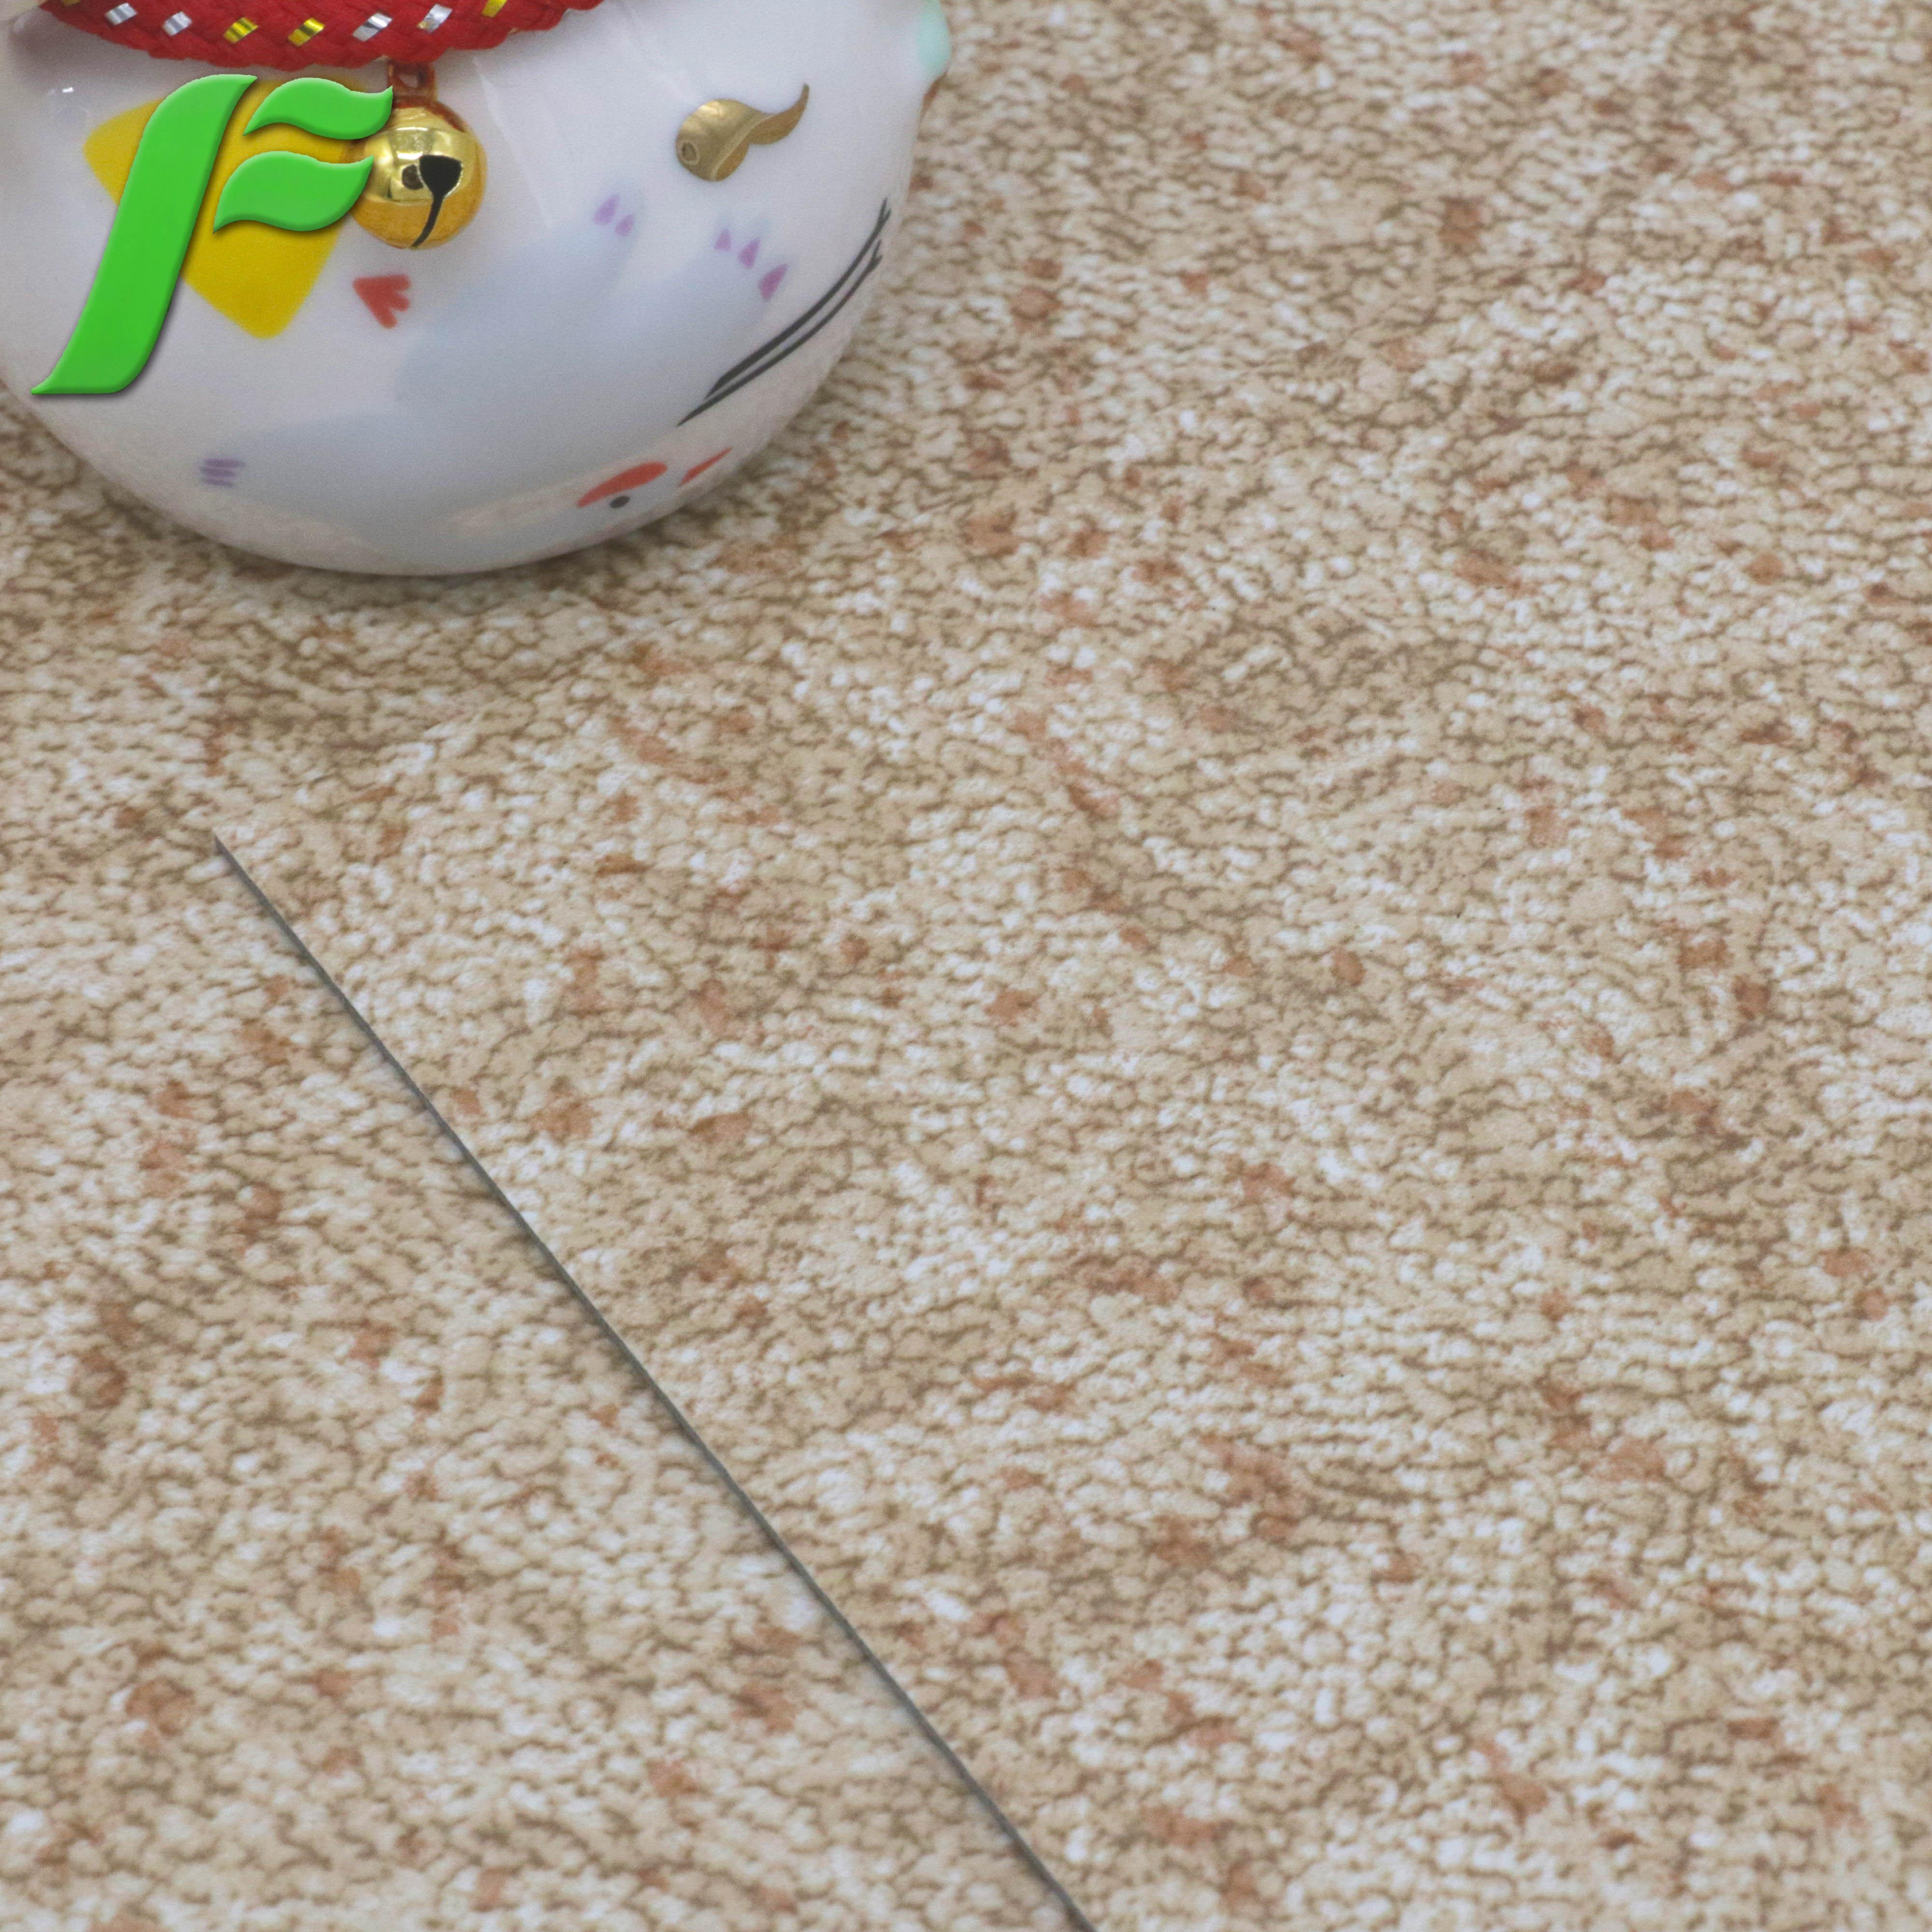 Morbi floor tiles rate morbi floor tiles rate suppliers and morbi floor tiles rate morbi floor tiles rate suppliers and manufacturers at alibaba dailygadgetfo Image collections